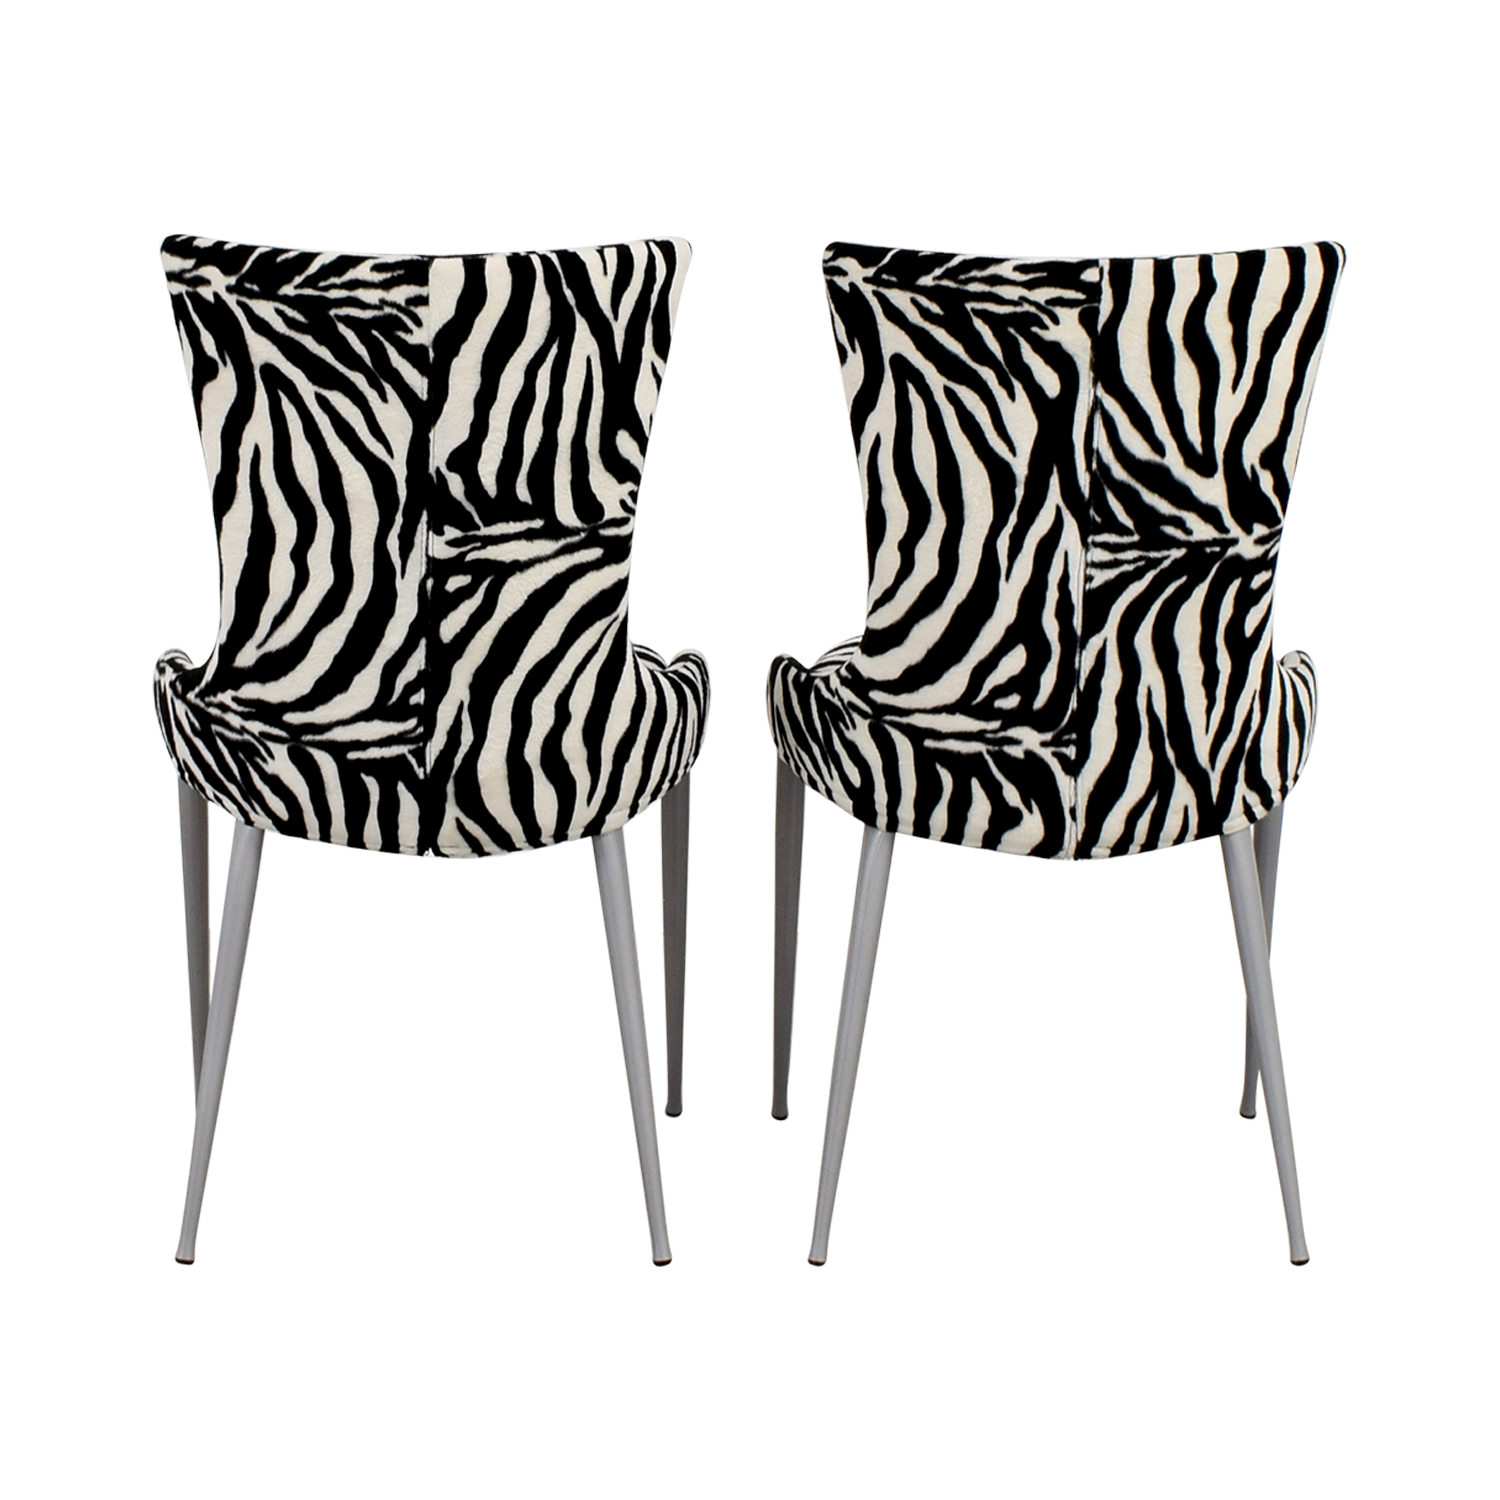 European Furniture Company European Furniture Company Contemporary Zebra Dining Chairs nyc